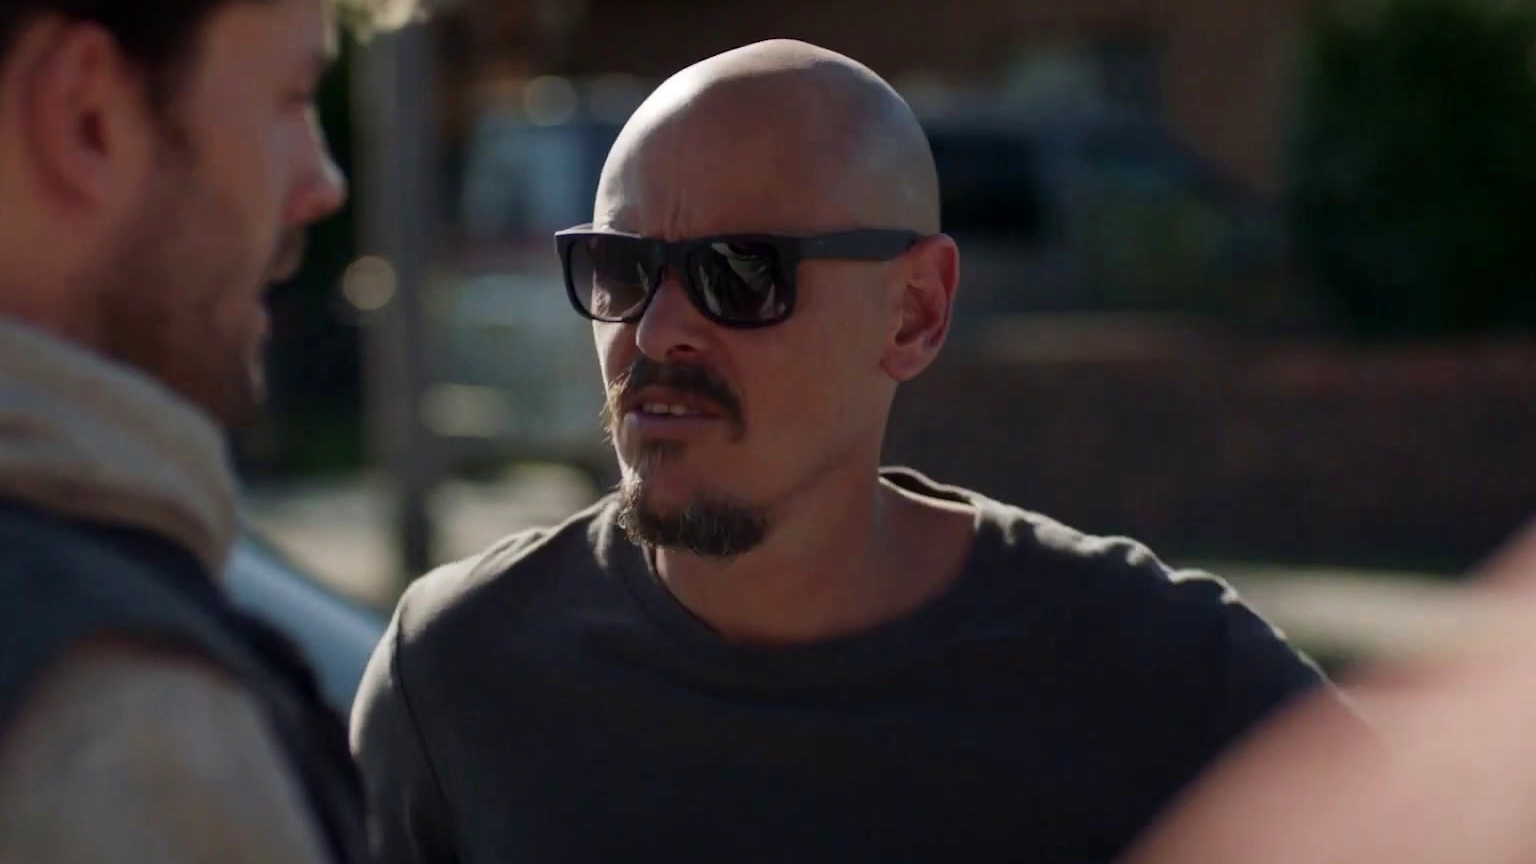 Mr Inbetween: Driving Down The Wrong Path